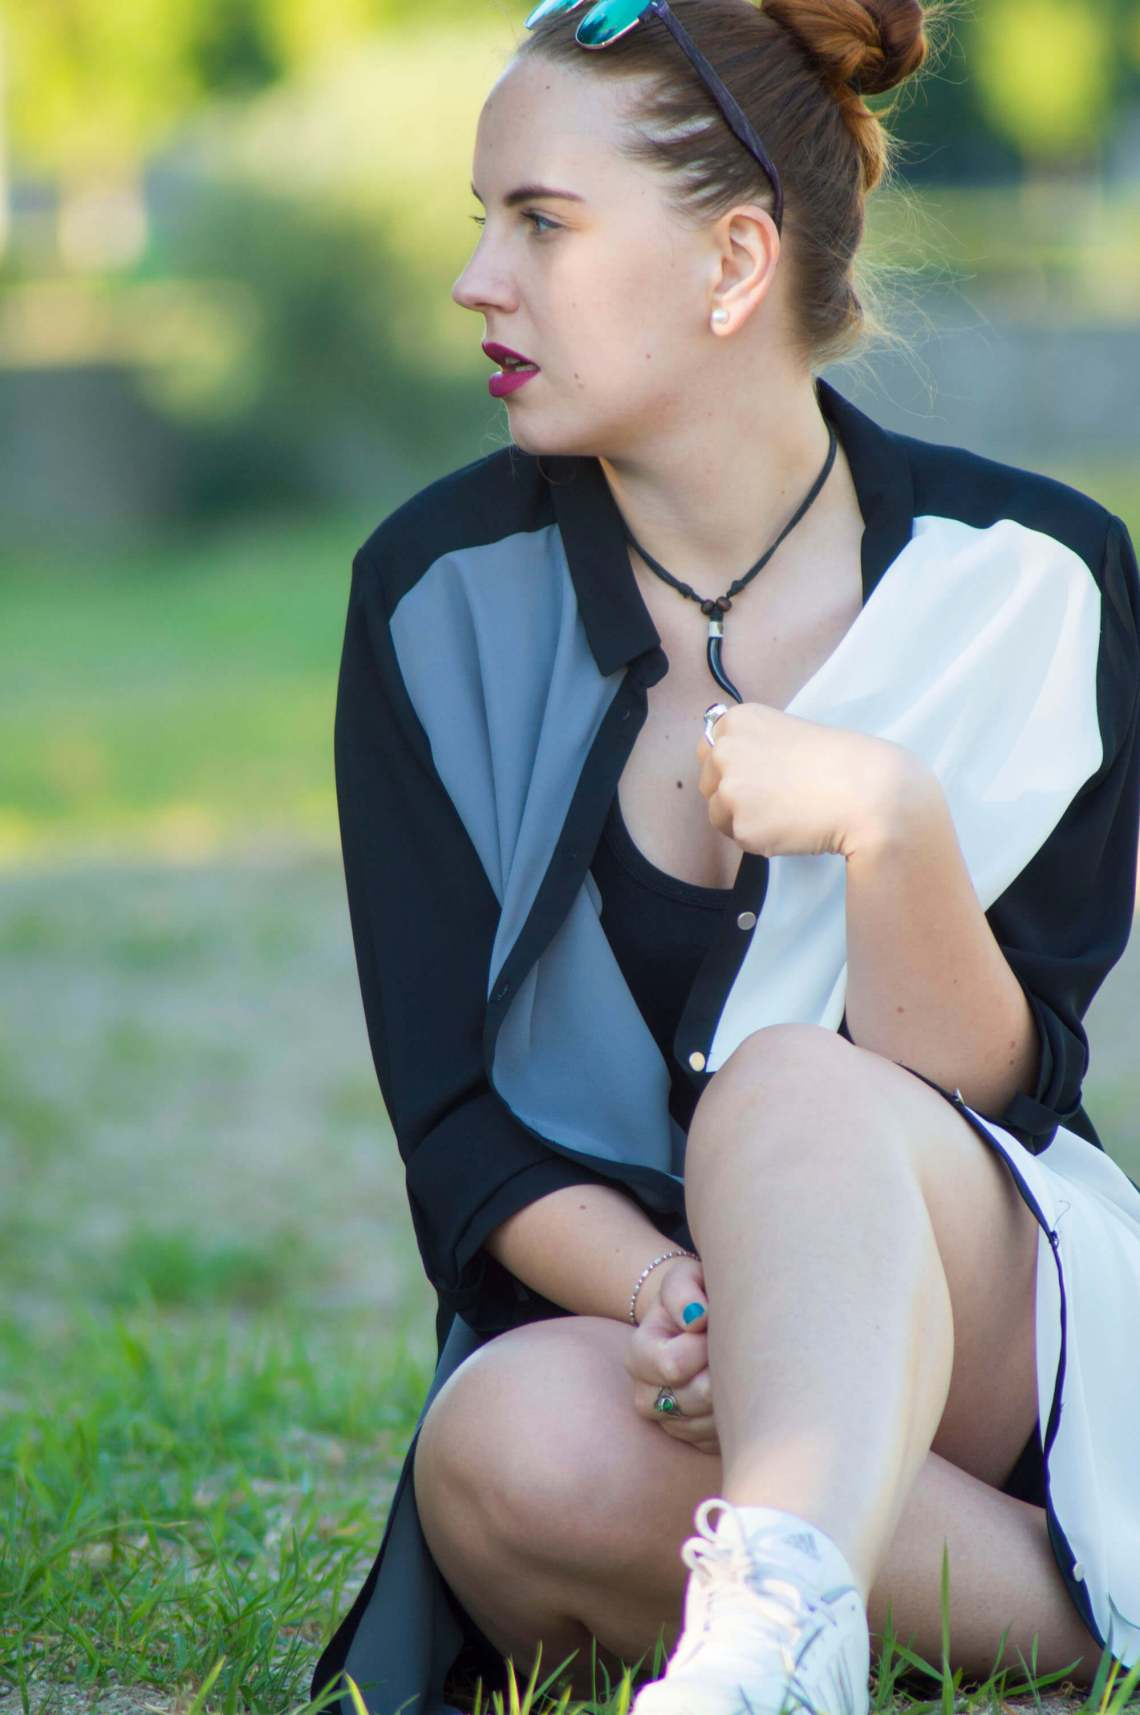 ootd edgy look - 5 ways to look more confident (3)